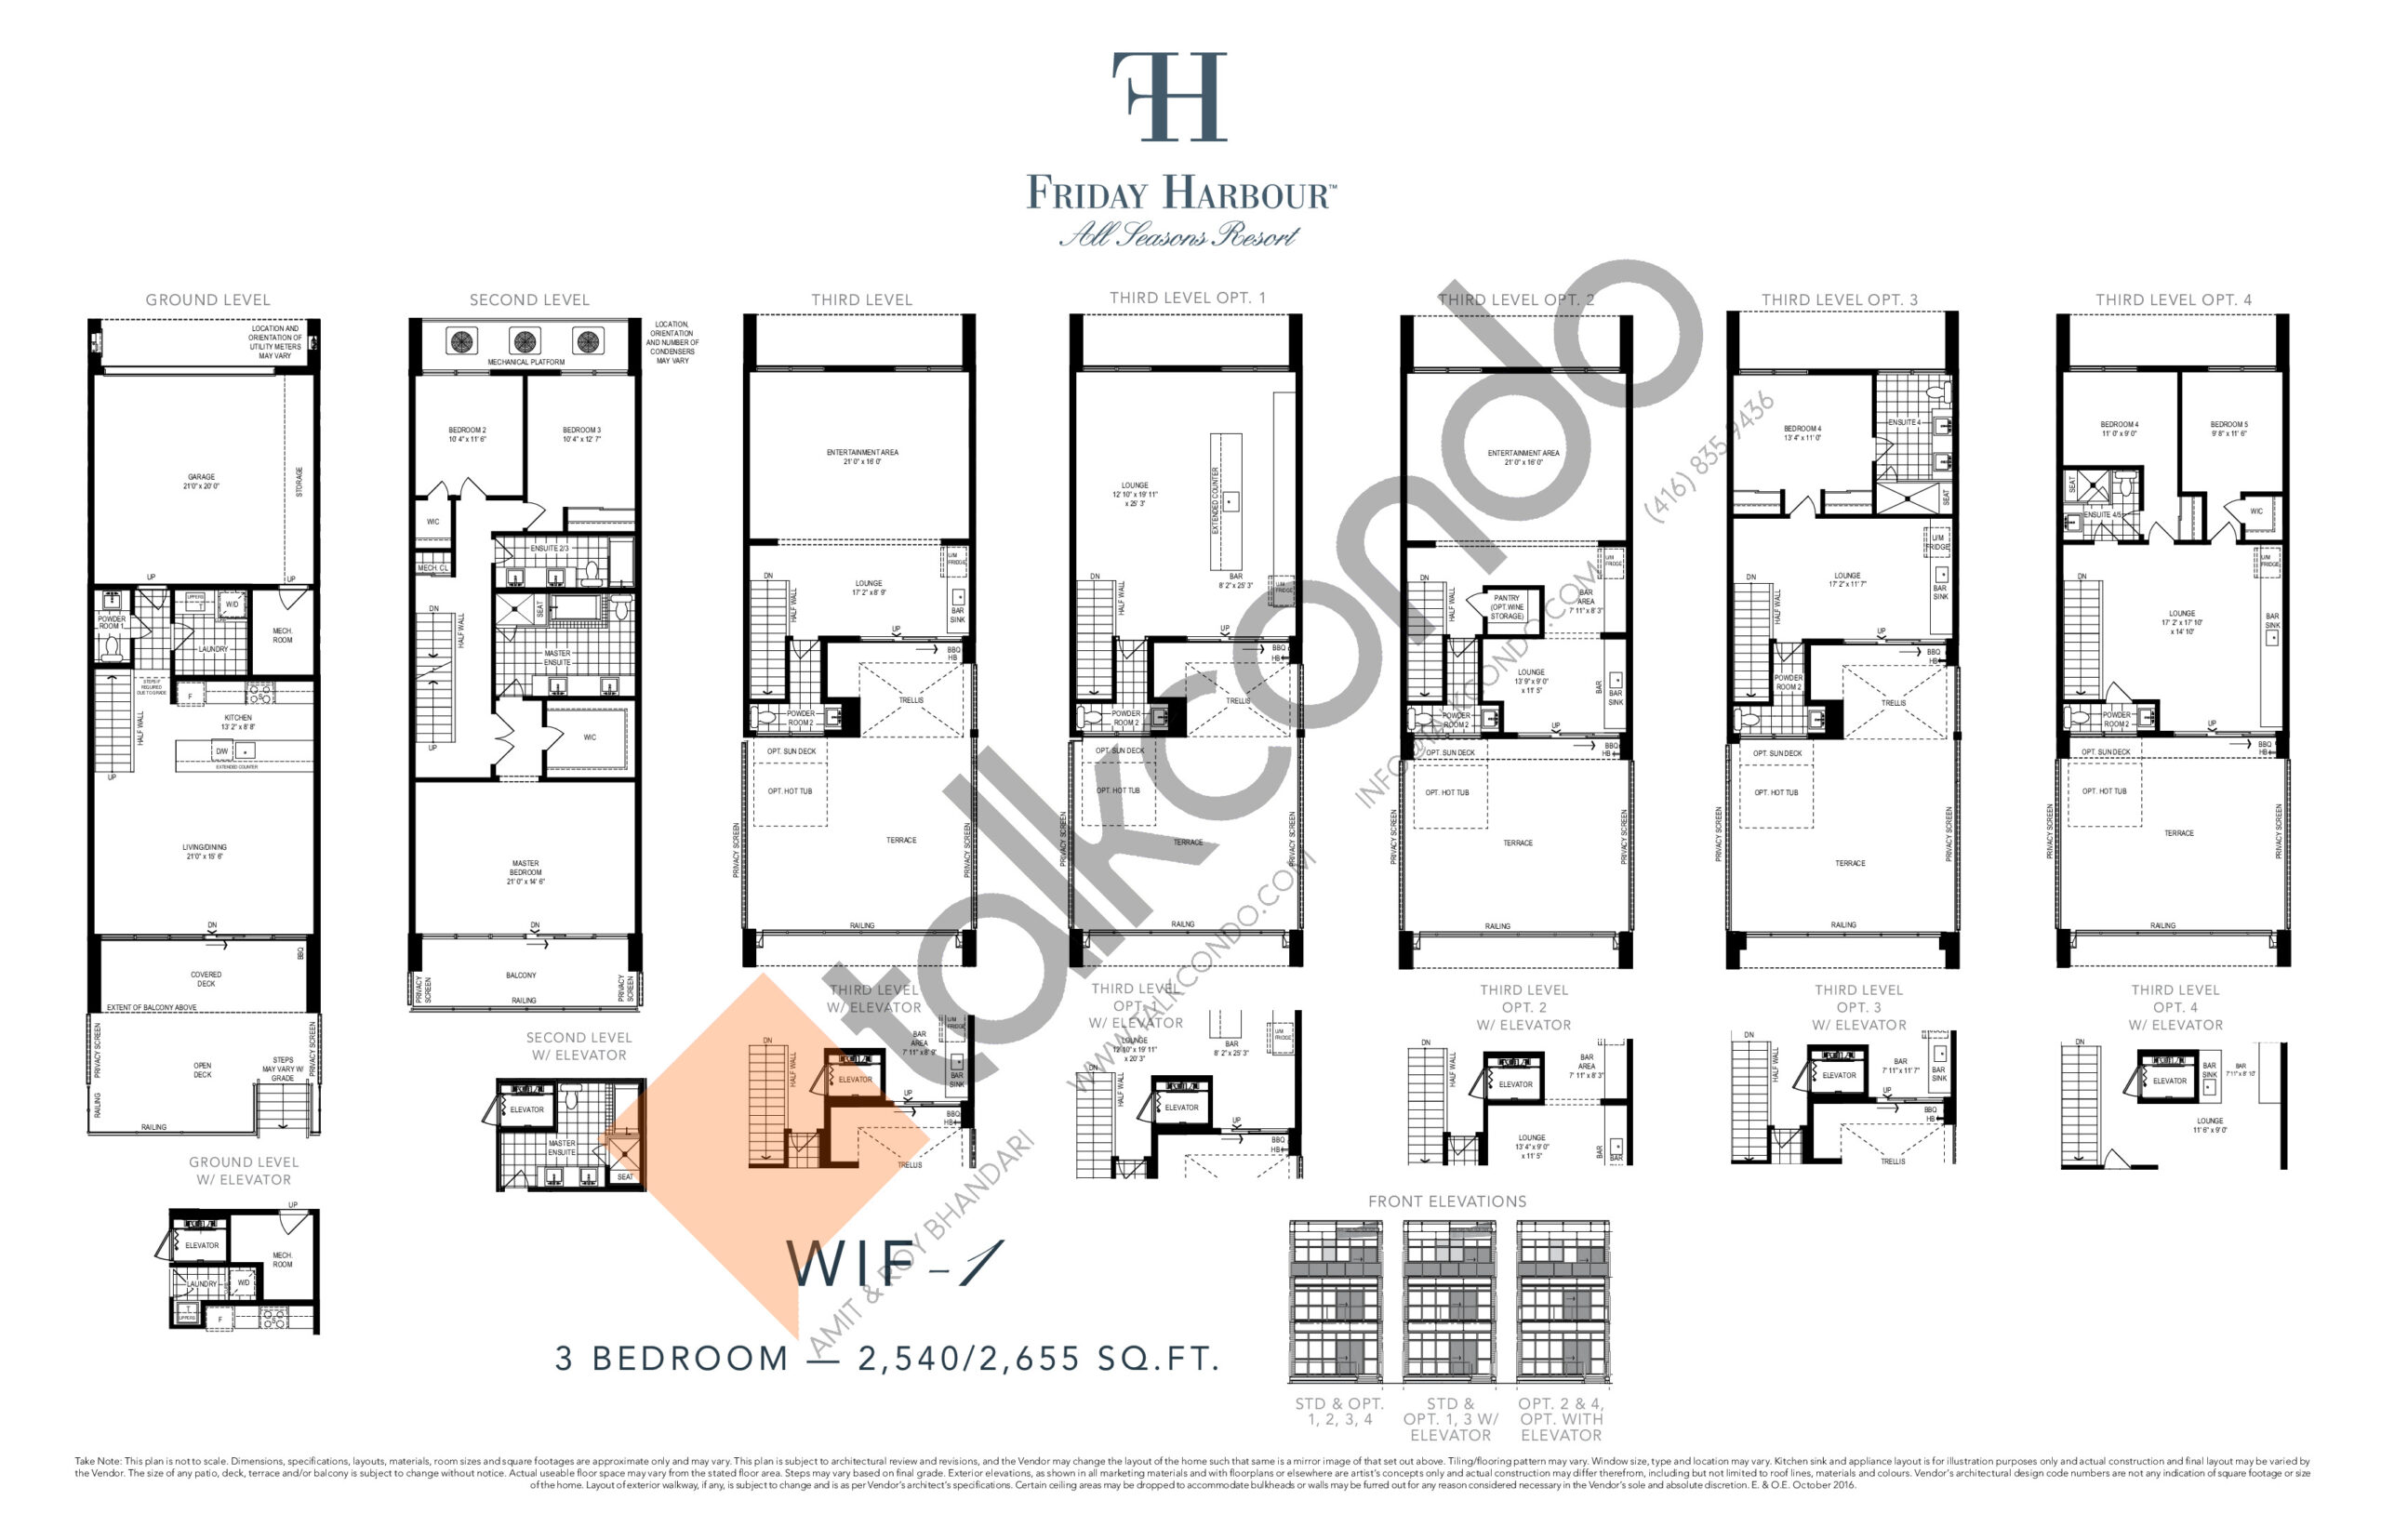 WIF - 1 (Ferretti Towns) Floor Plan at Friday Harbour Resort Condos - 2540 sq.ft